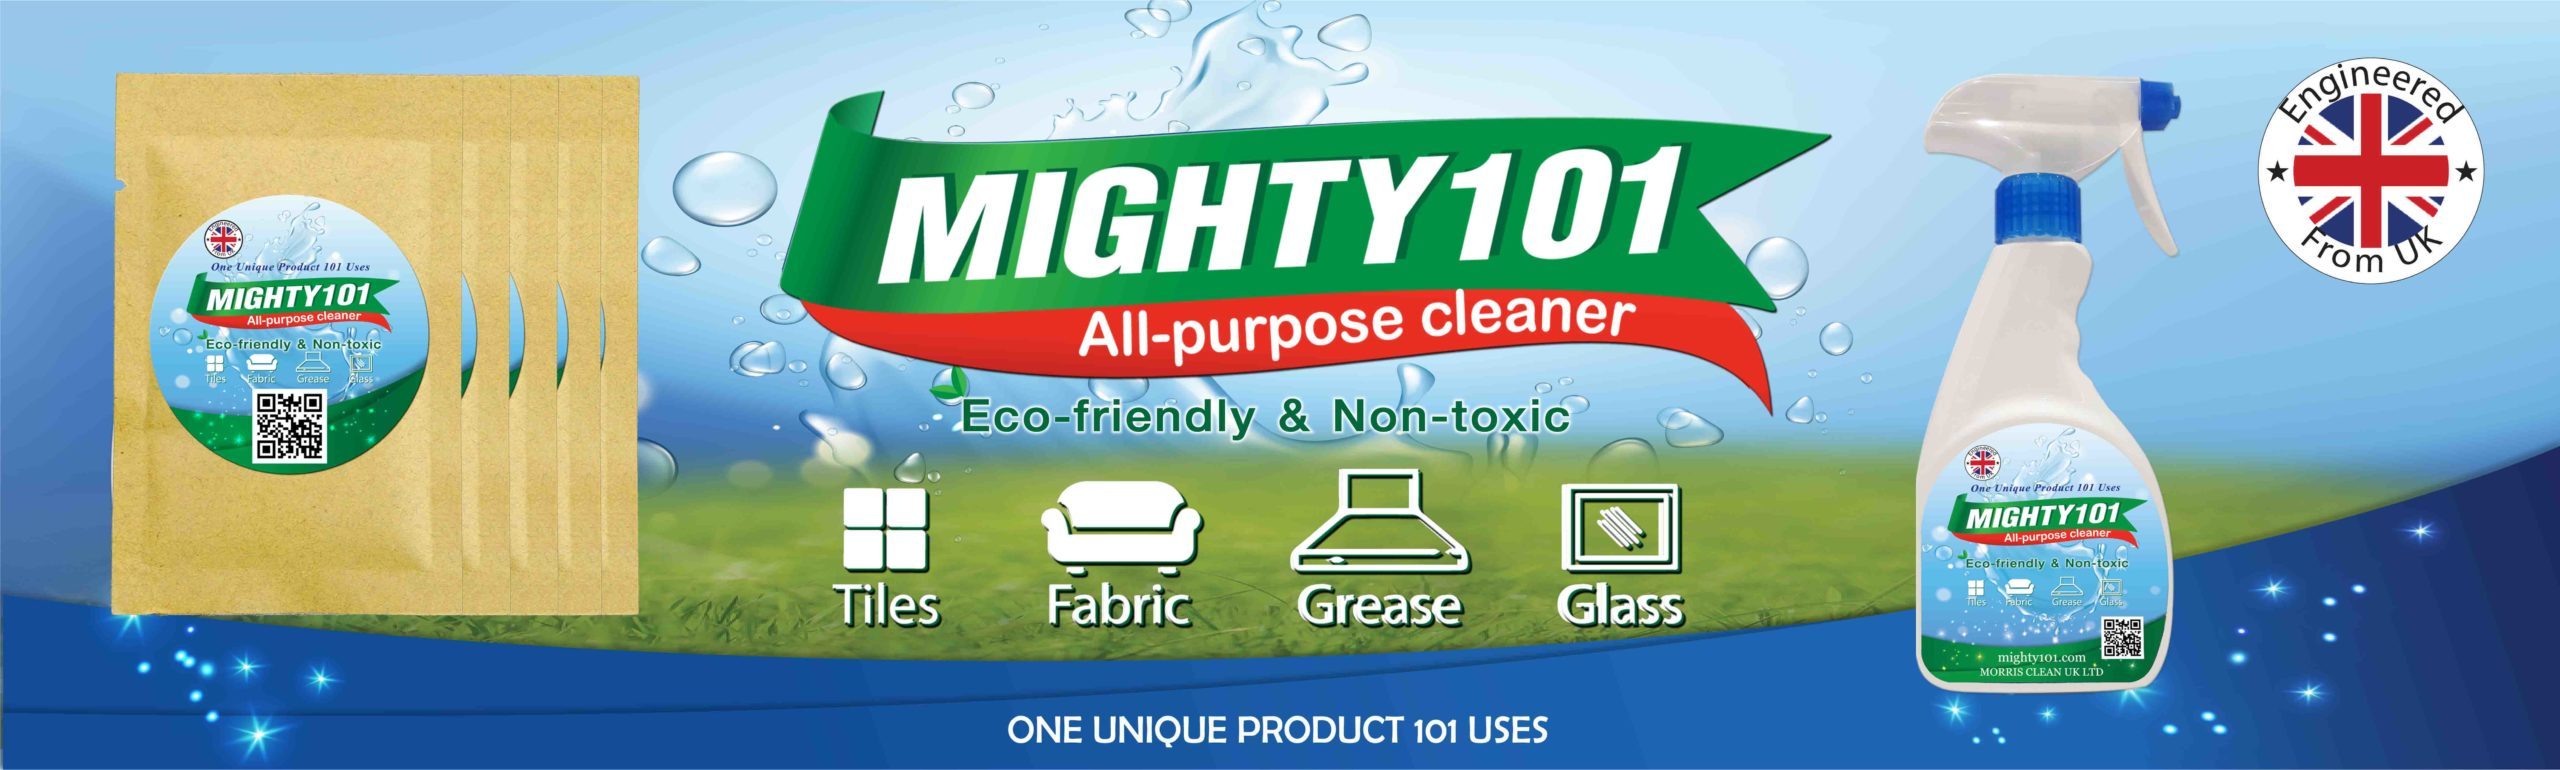 tripleclicks shop, triple clicks store, mighty101, best all purpose cleaner 2021